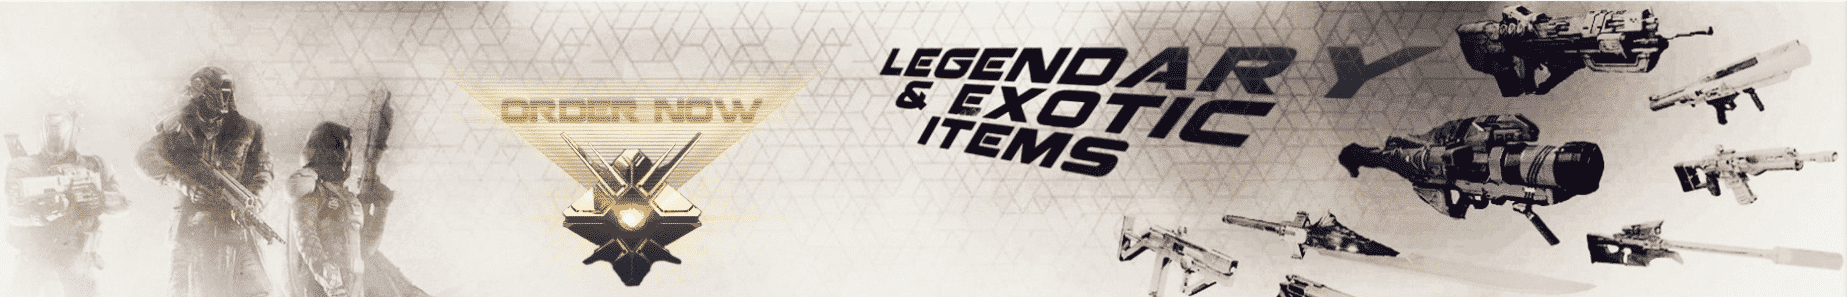 LEGENDARY AND EXOTIC ITEMS